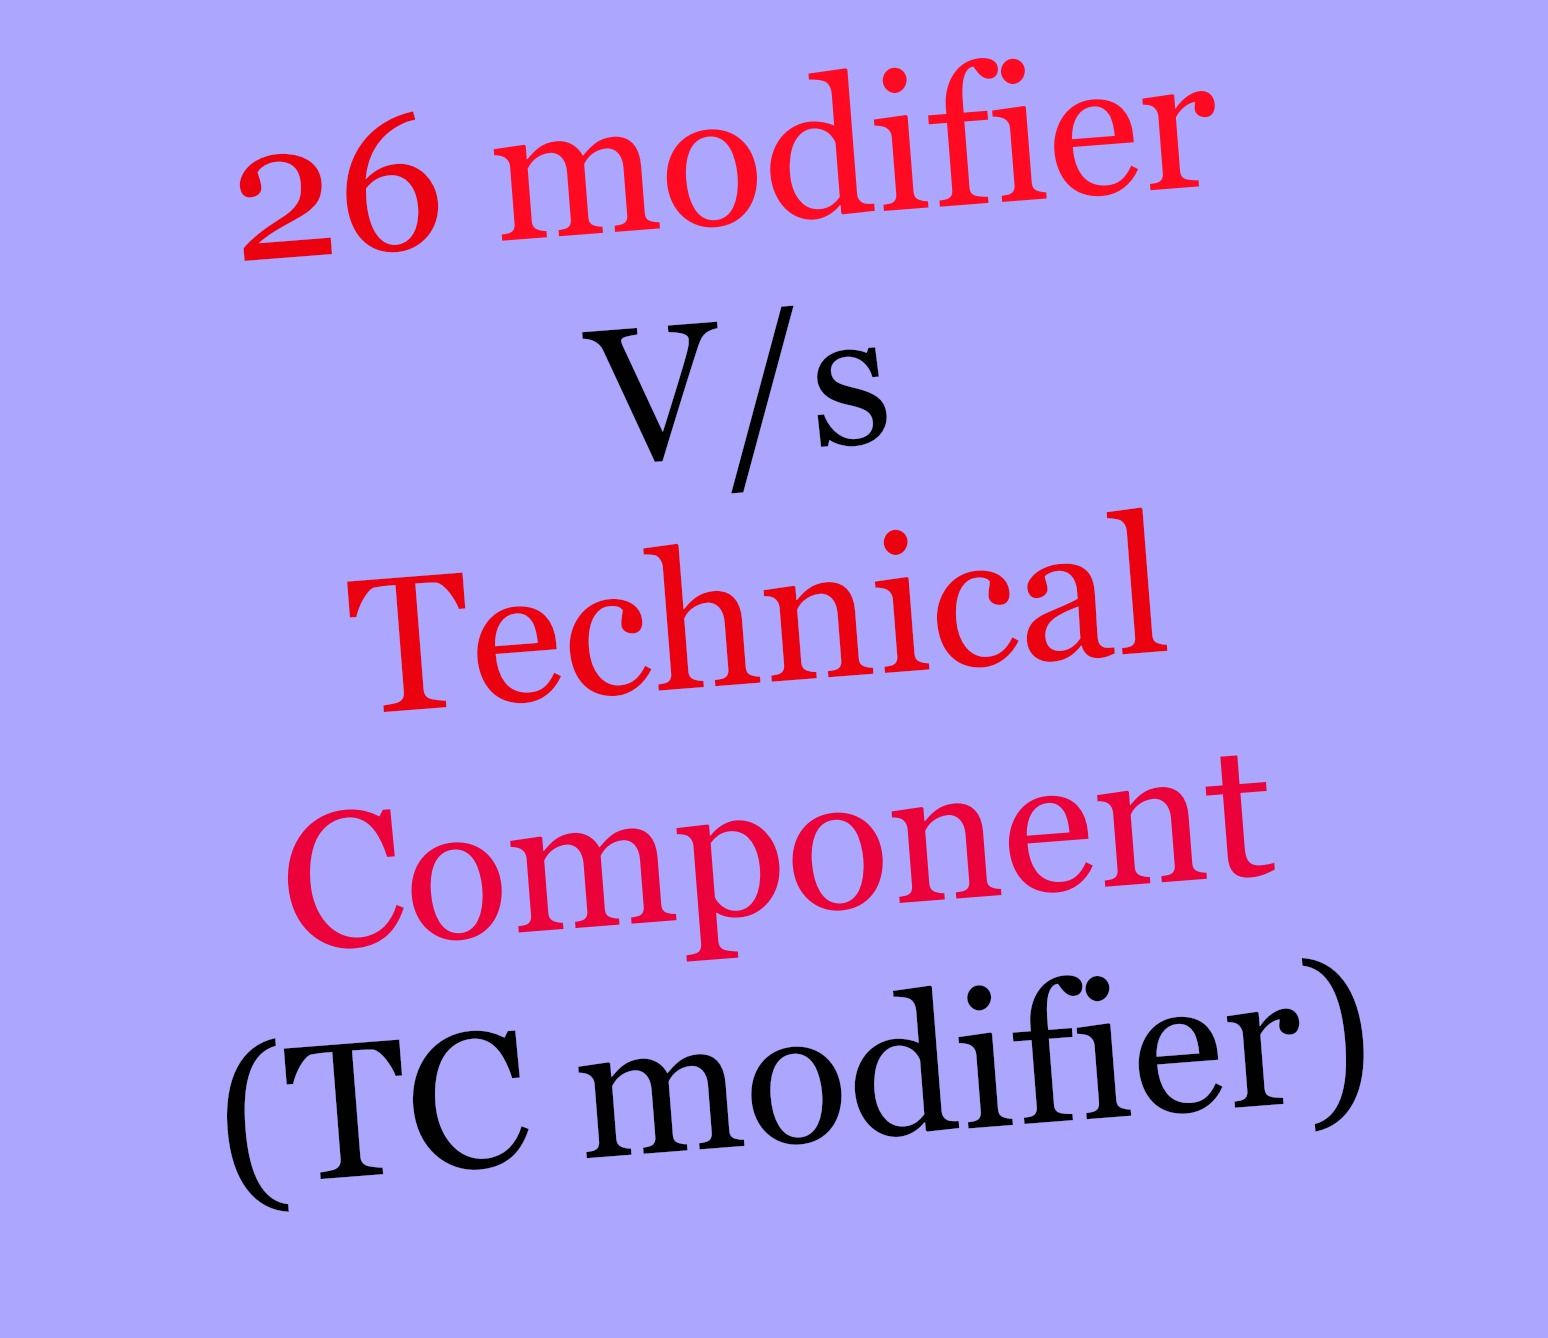 Learn How To Use And Code 26 And TC Modifier In Medical